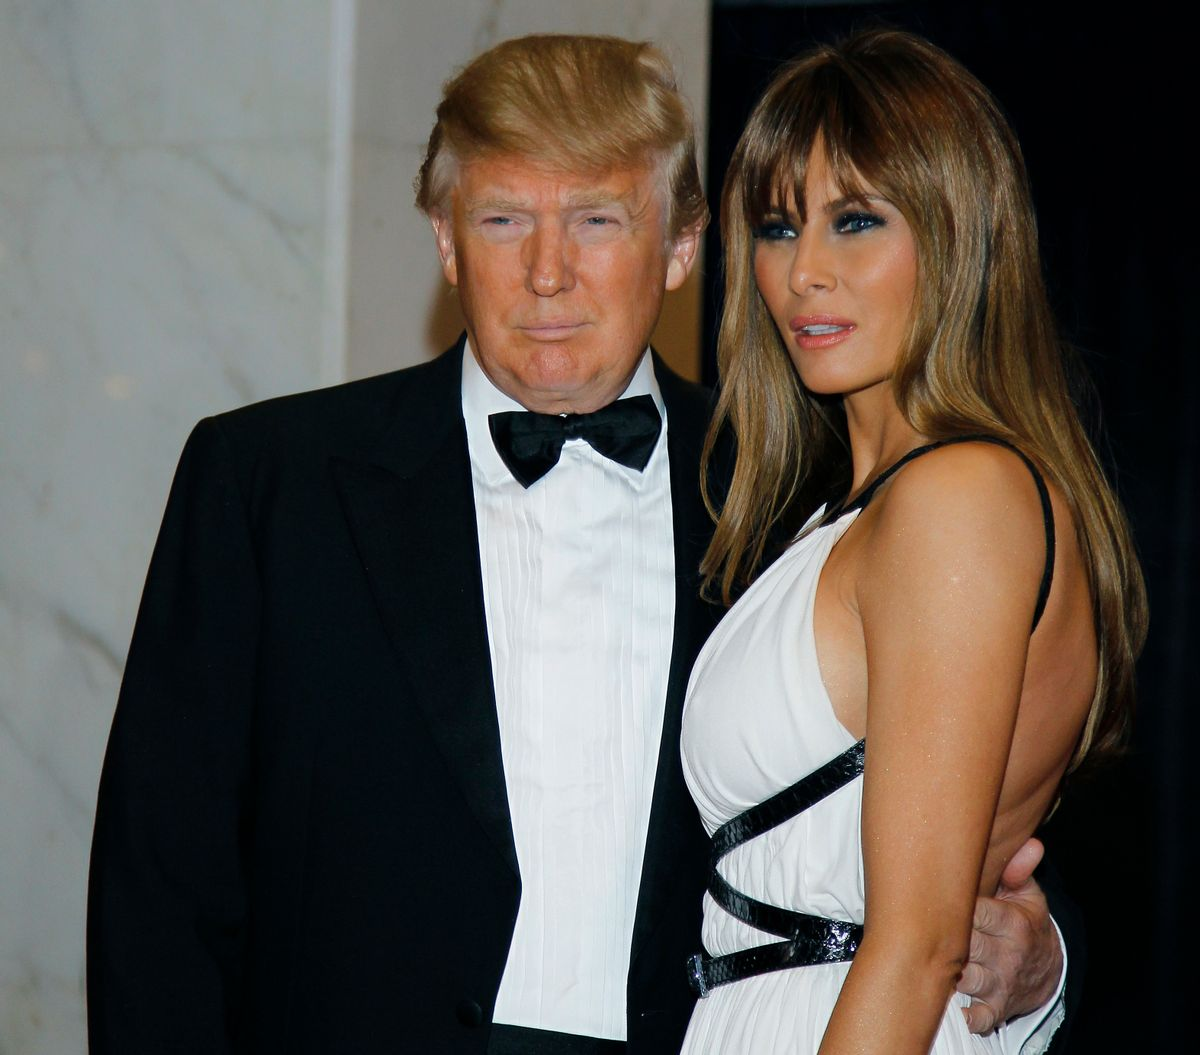 FILE - In this April 30, 2011, file photo Donald Trump, left, and Melania Trump arrive for the White House Correspondents Dinner in Washington. He won't be on November's ballot, but President Barack Obama is slowly embracing his role as the anti-Trump, taking on the Republican front-runner in ways that no other Democrat can. Obama's public scolding of Trump, who for years peddled inaccurate claims about Obama's birth certificate, dates back to 2011, when Obama roasted him at the dinner. Trump was visibly humiliated as Obama lobbed joke after joke at him on national television. (AP Photo/Alex Brandon, File) (AP)